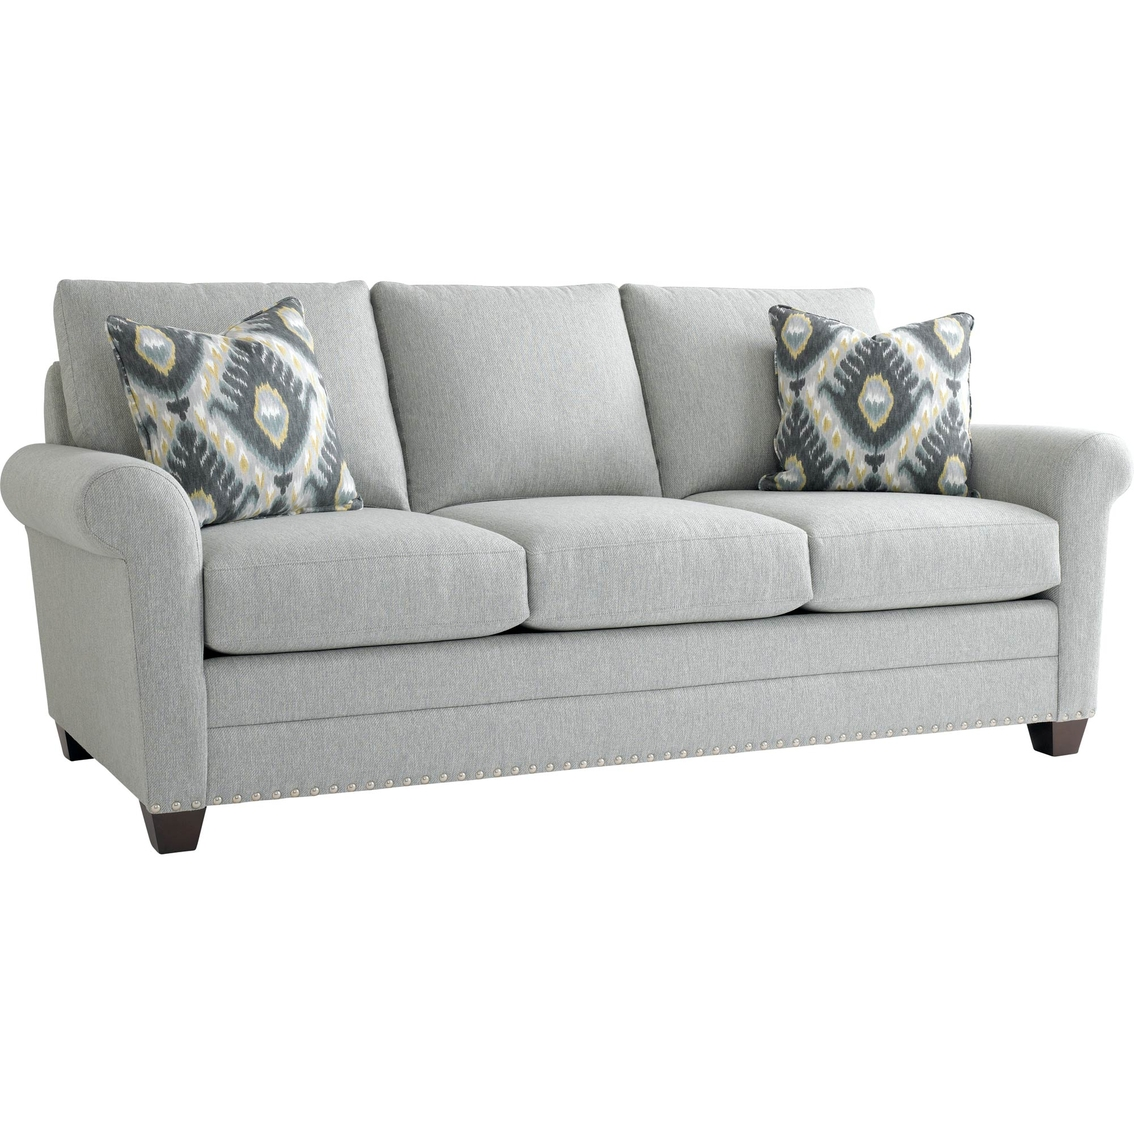 Bassett Anderson Queen Sofa Sleeper Sofas Couches Home